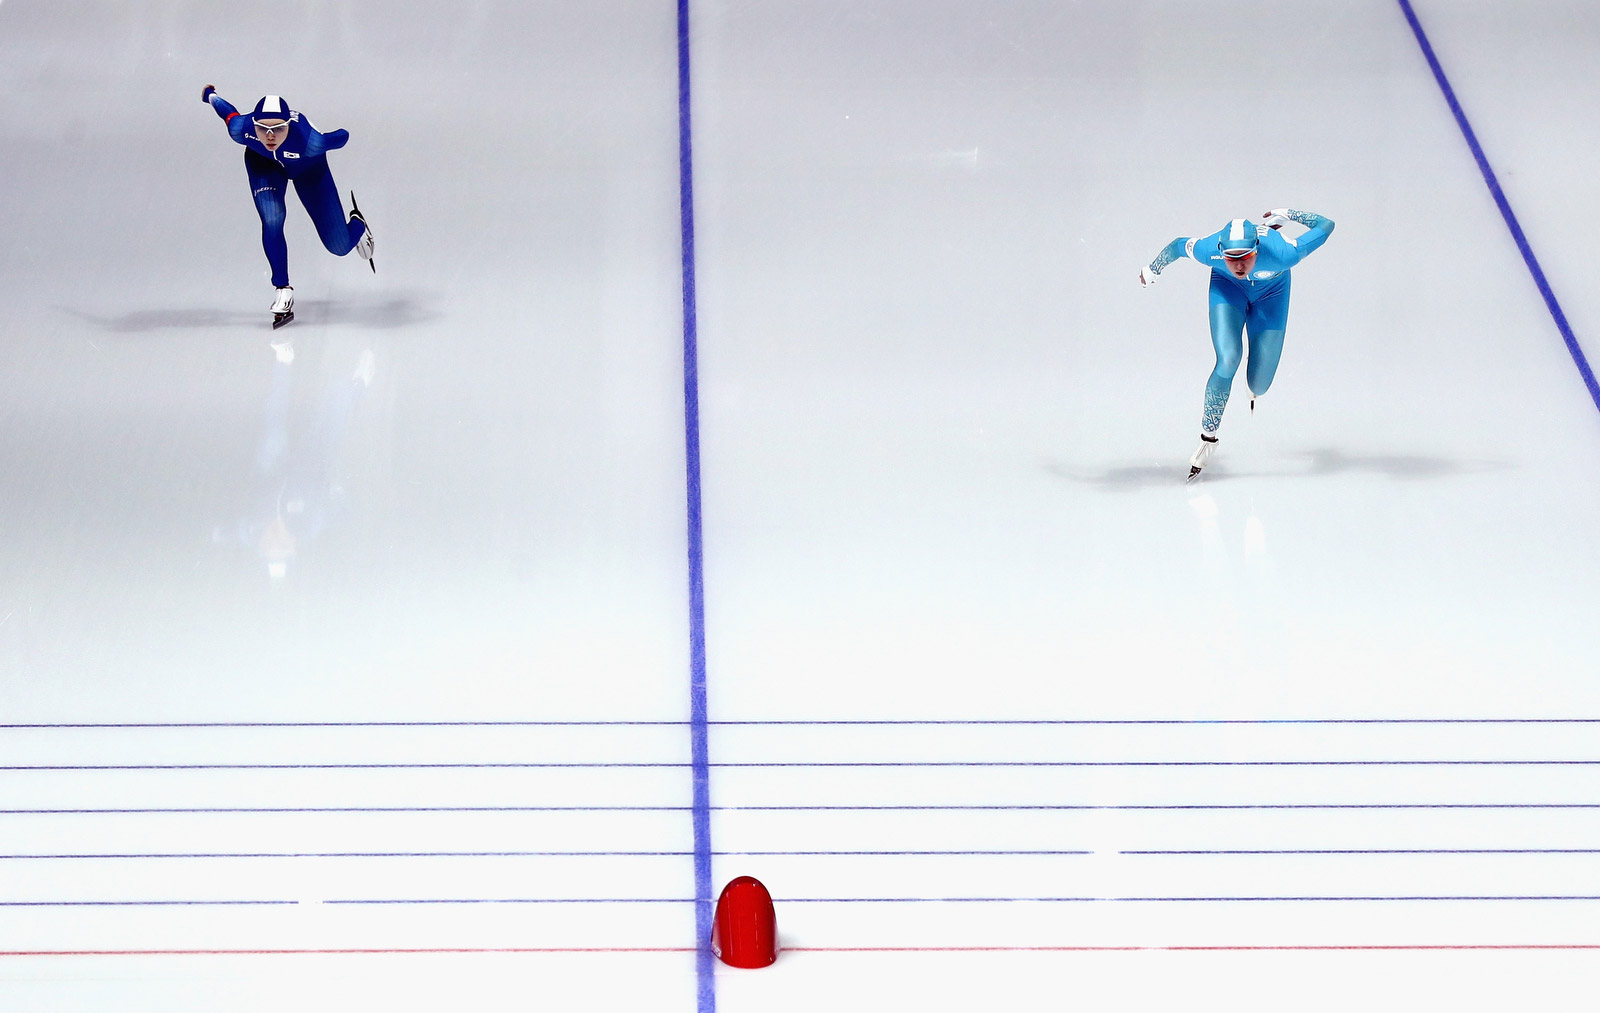 South Korea's Noh Seon-yeong, left, and Kazakhstan's Yekaterina Aidova skate in the final of the 1,500 meters. Maddie Meyer/Getty Images